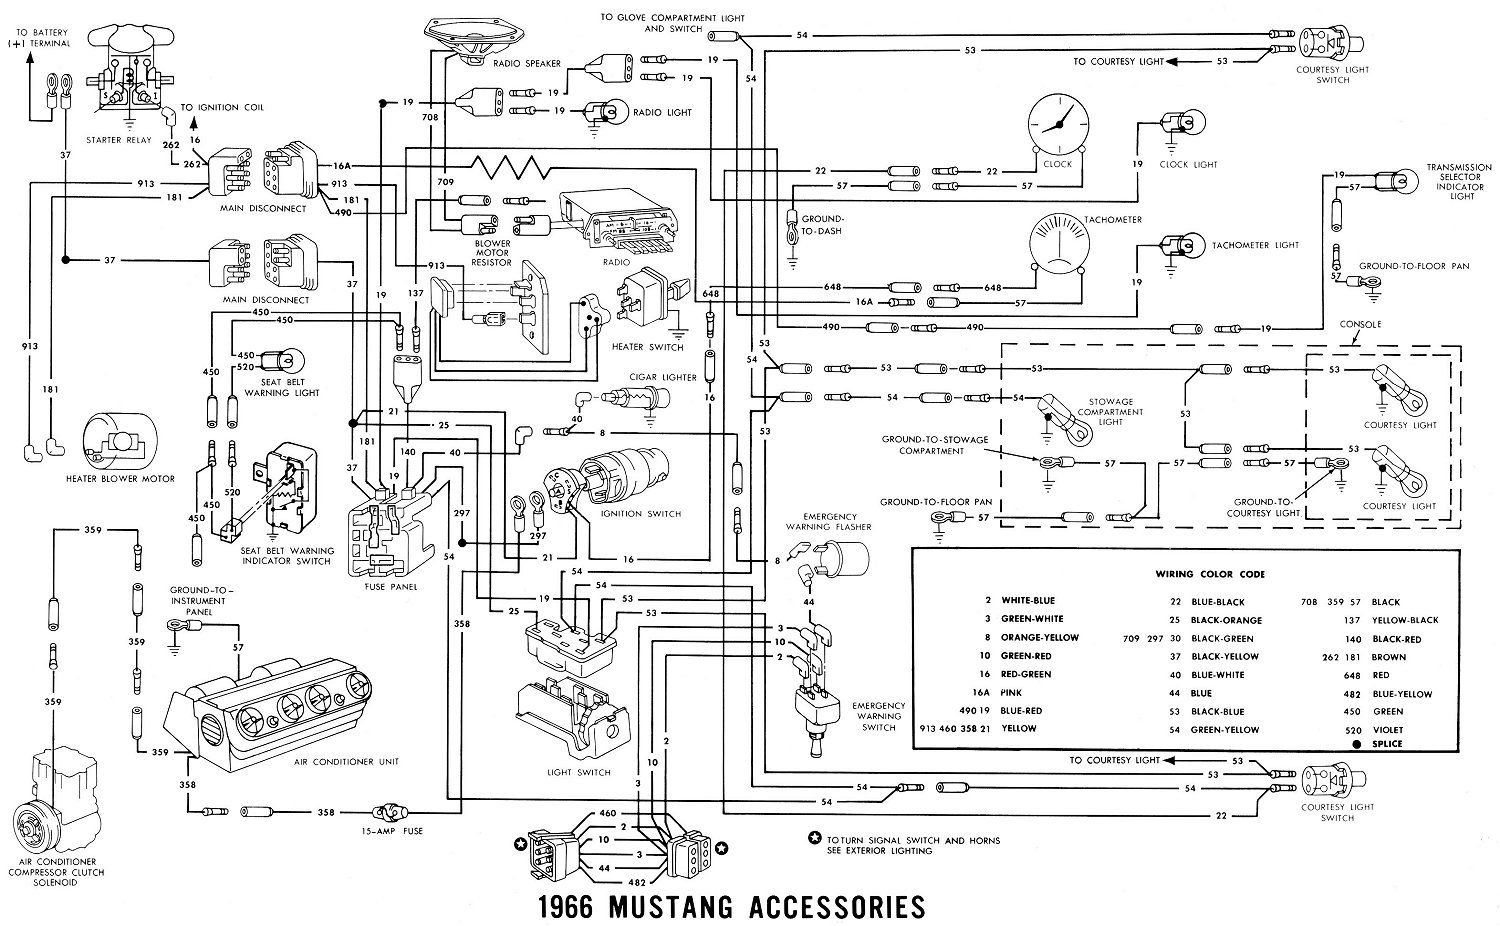 1997 Cadillac Stereo Wiring Diagram Will Be A Thing 2001 Deville Vintage Mustang Diagrams 97 Ford F 150 Radio